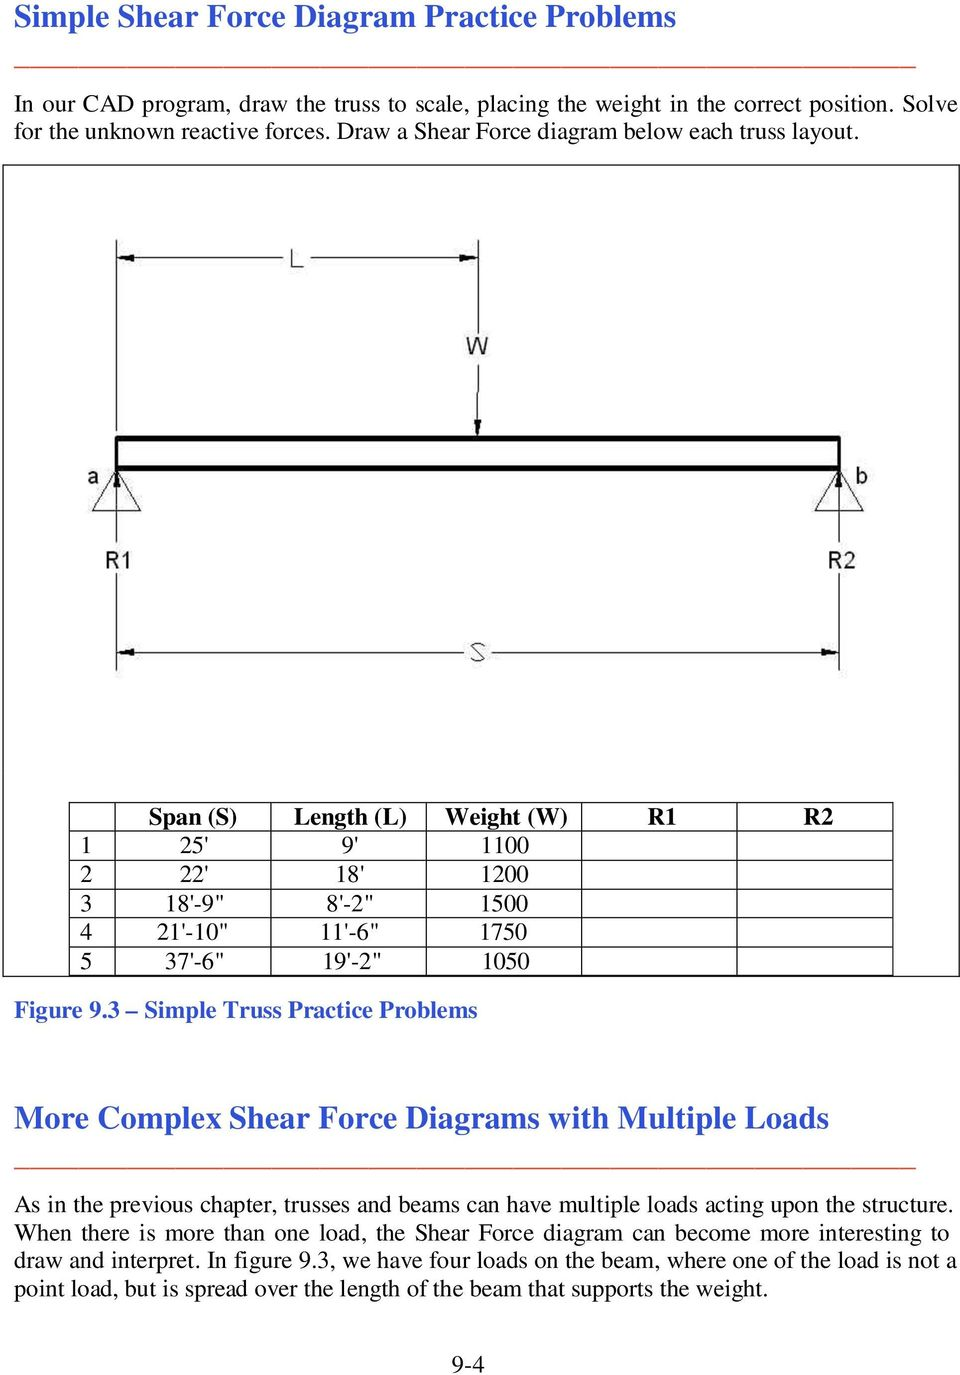 Shear Force And Moment Diagrams Pdf Free Body Diagram Truss 3 Simple Practice Problems More Complex With Multiple Loads As In The